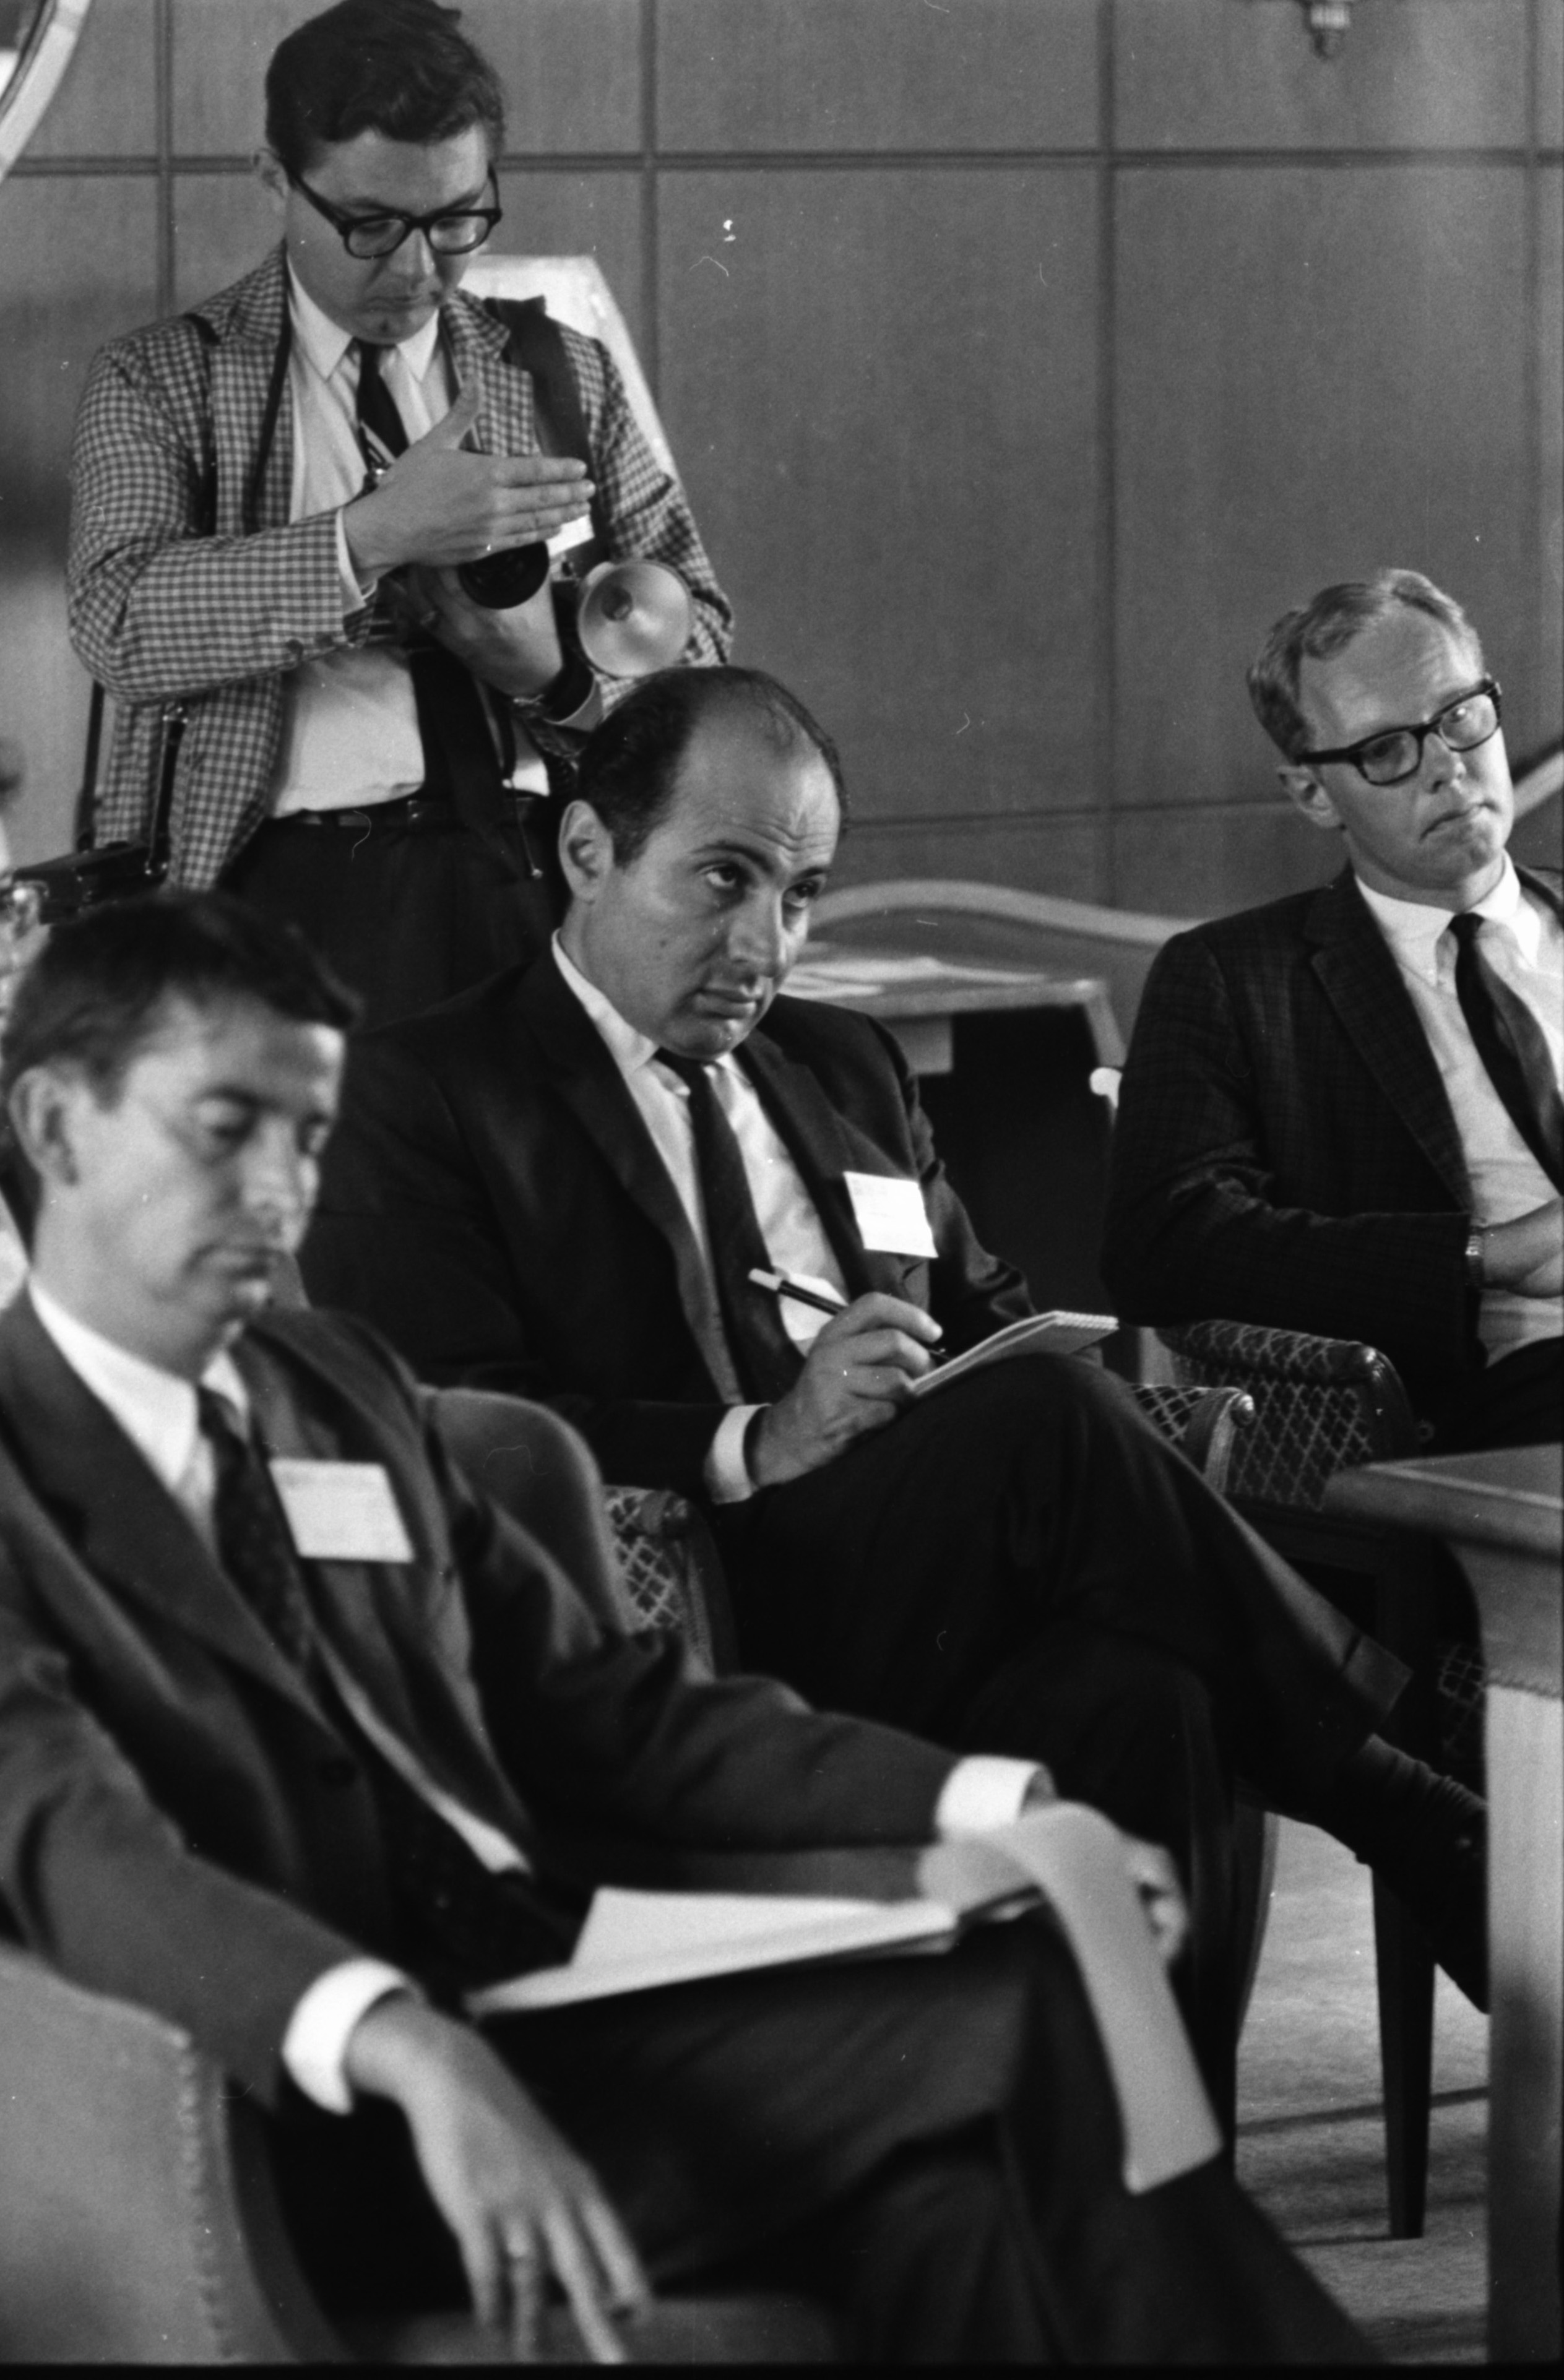 Reporter From Soviet Union's Tass News Service, Vahan Mkrtchian, At International Conference of Orientalists At UM, August 16, 1967 image